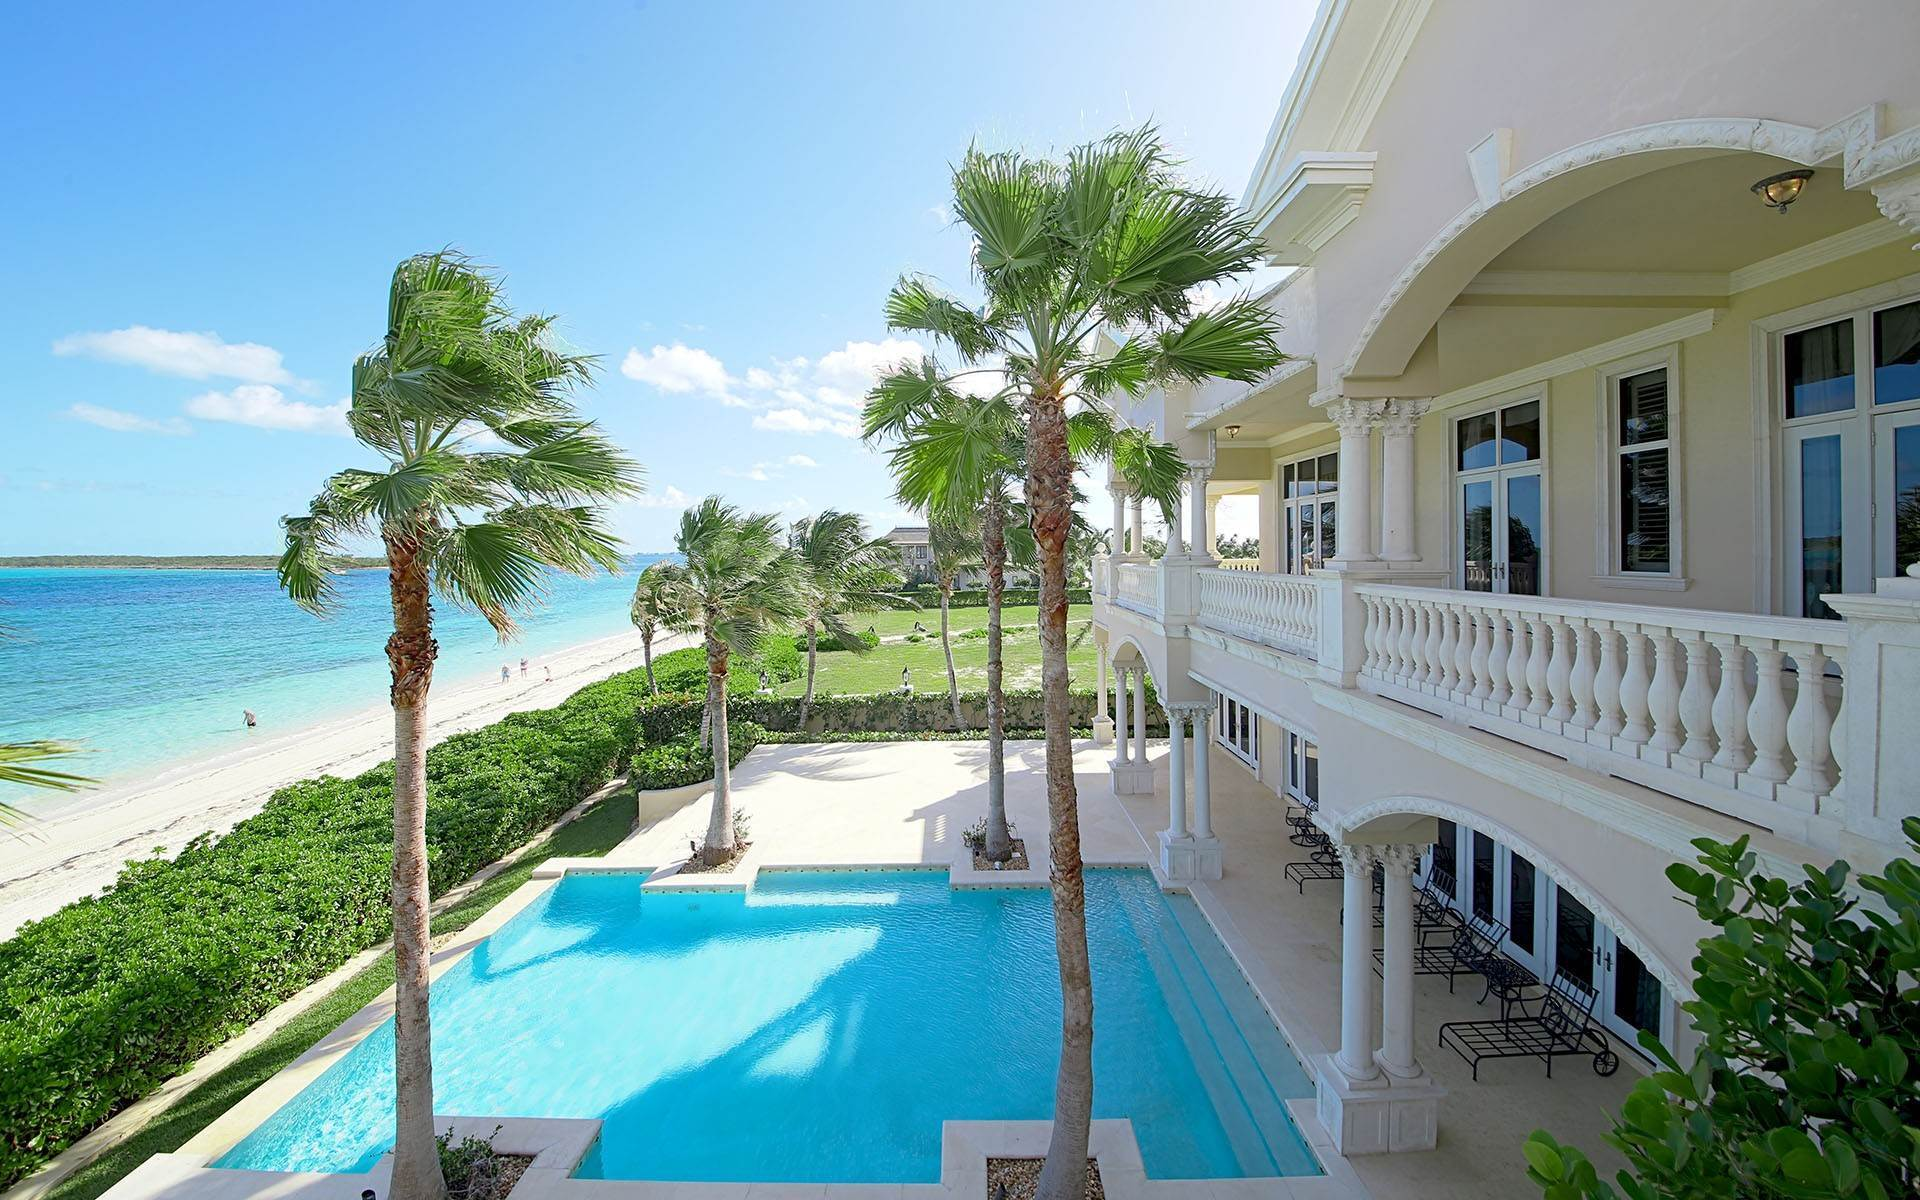 Single Family Homes for Sale at Beachfront Mansion in Ocean Club Estates, Paradise Island Ocean Club Estates, Paradise Island, Nassau And Paradise Island Bahamas